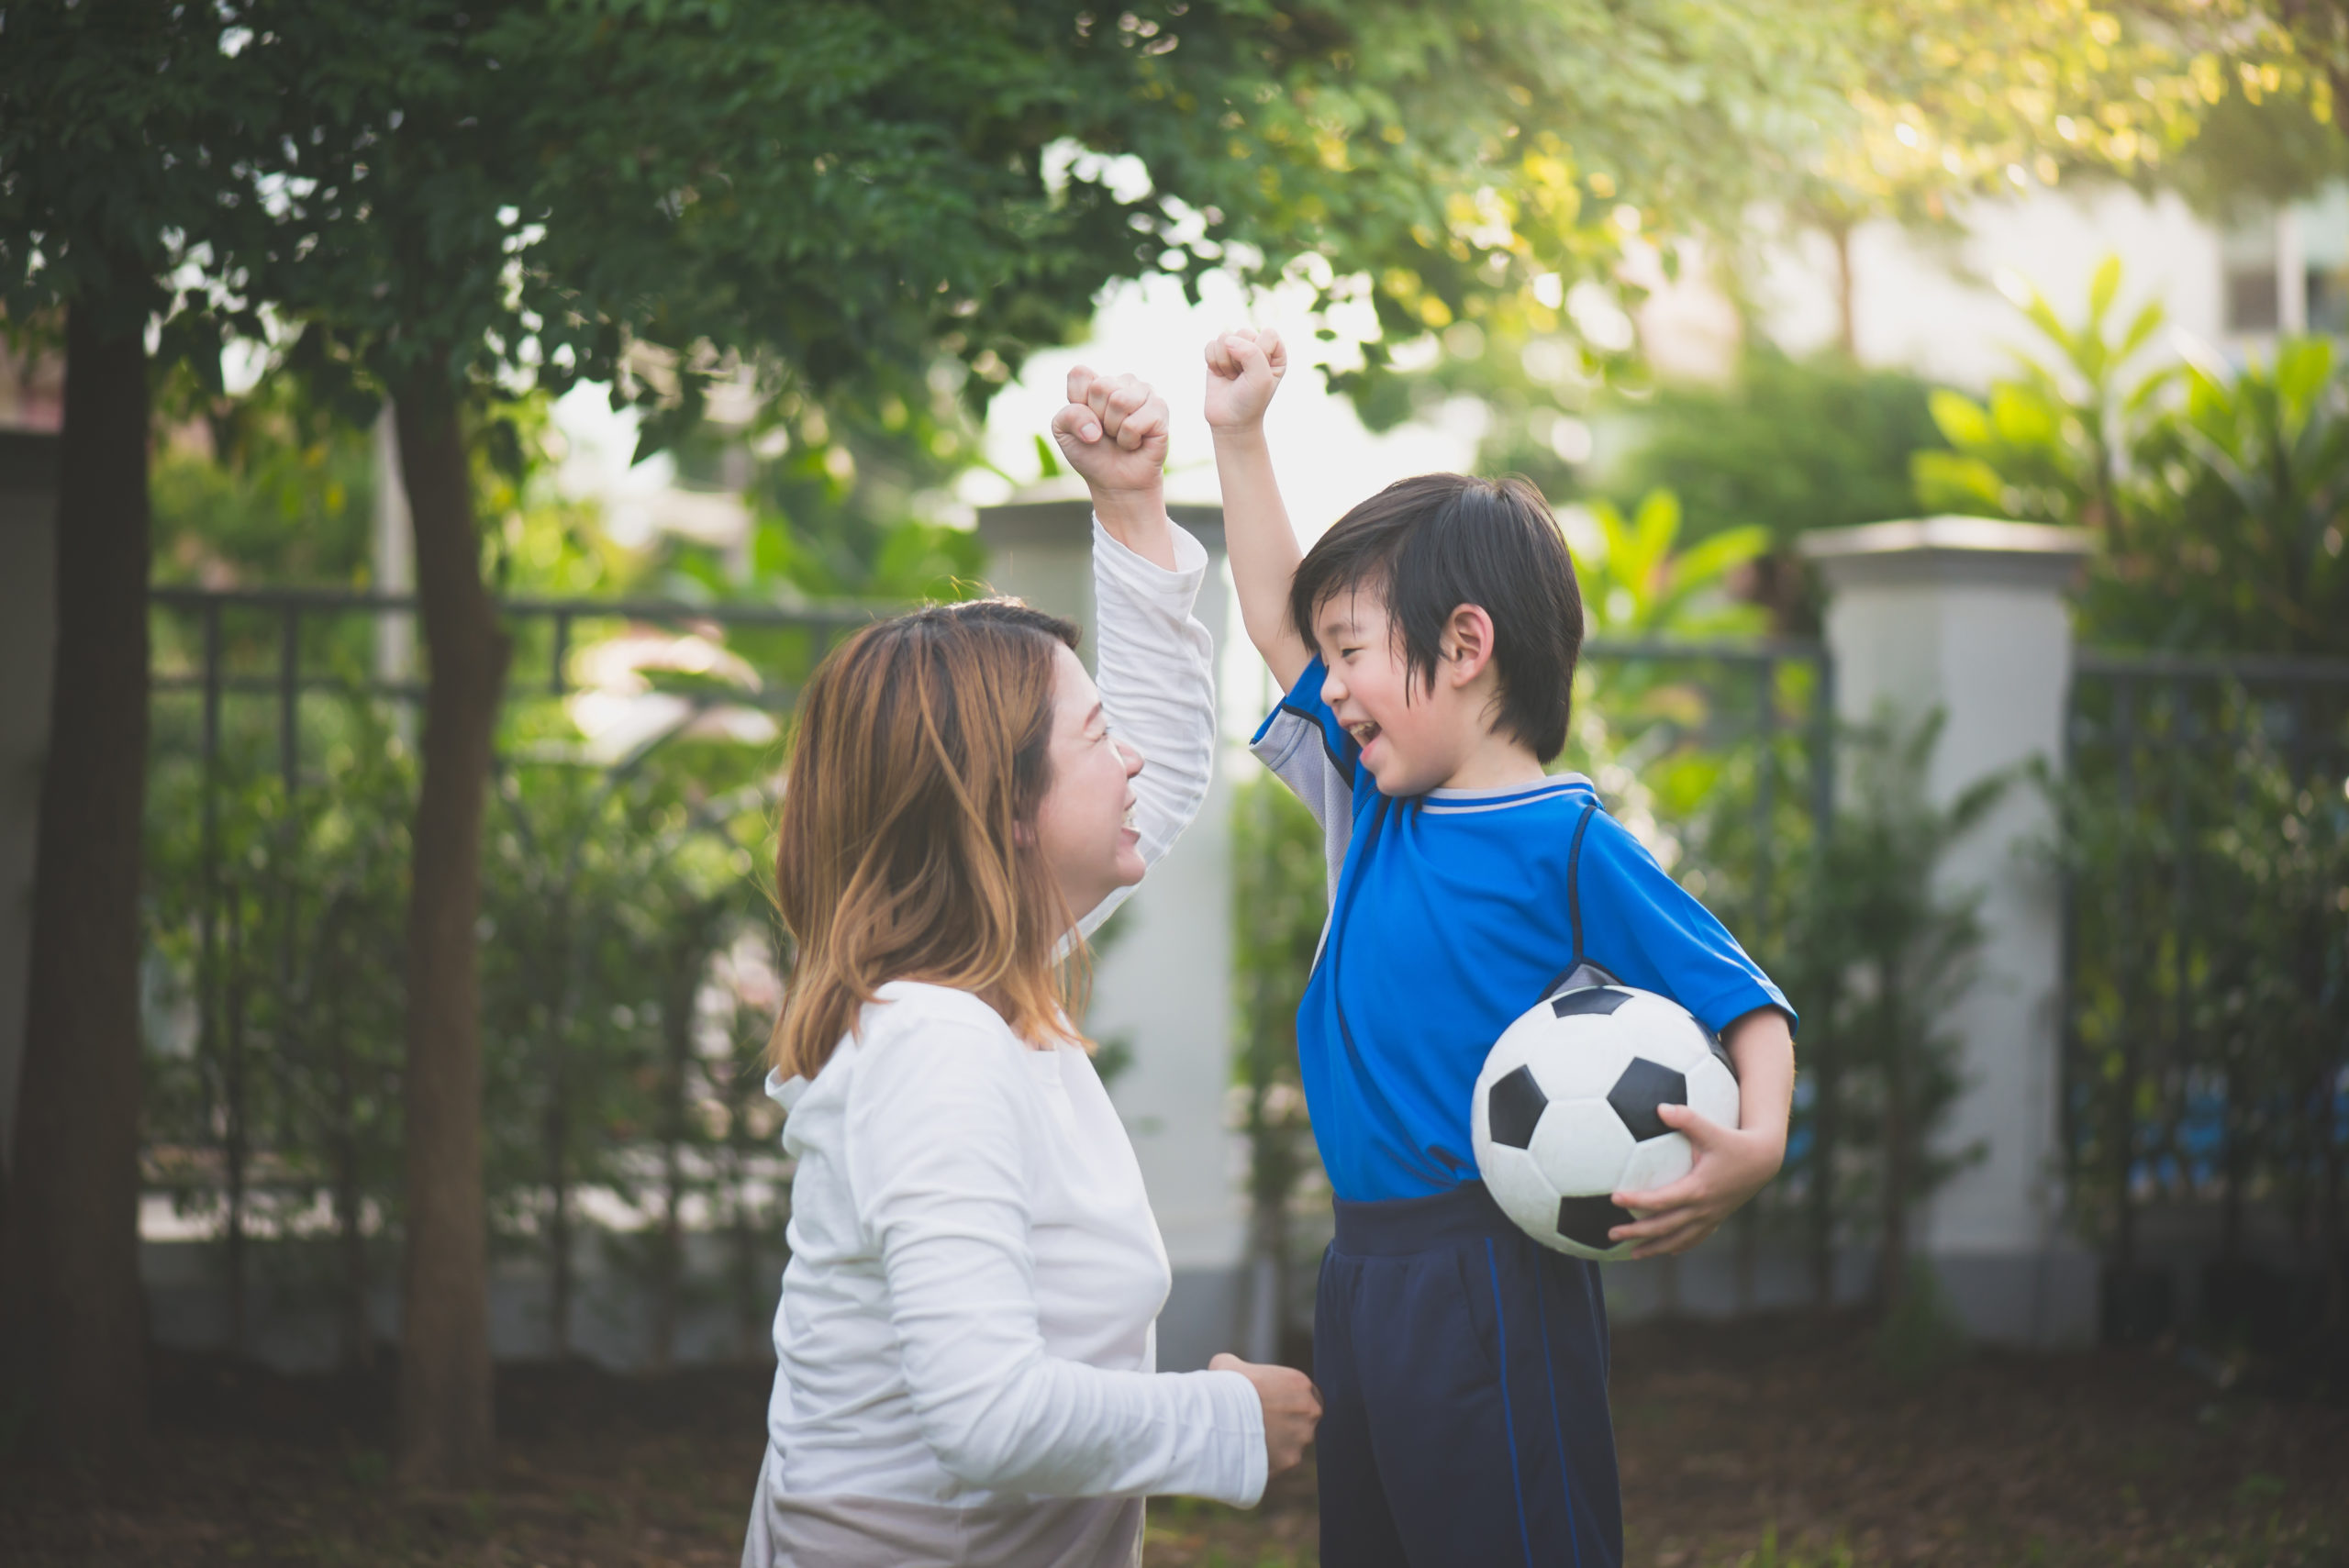 How To Talk to Your Kids About Winning and Losing In Sports